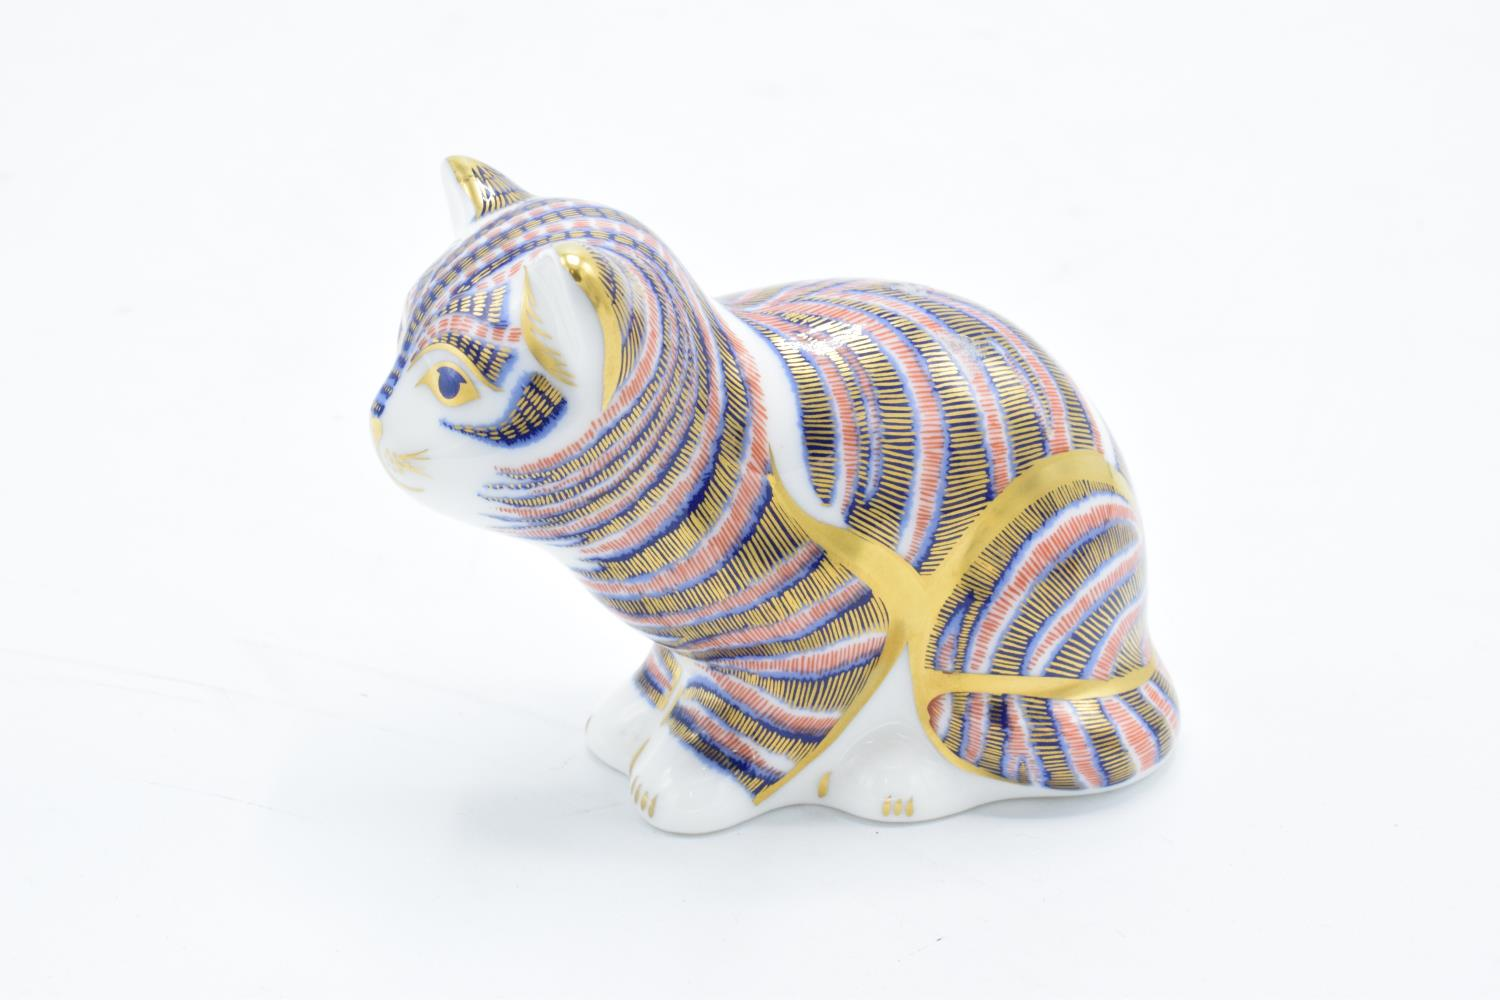 Royal Crown Derby paperweight in the form of a sitting kitten. In good condition with no obvious